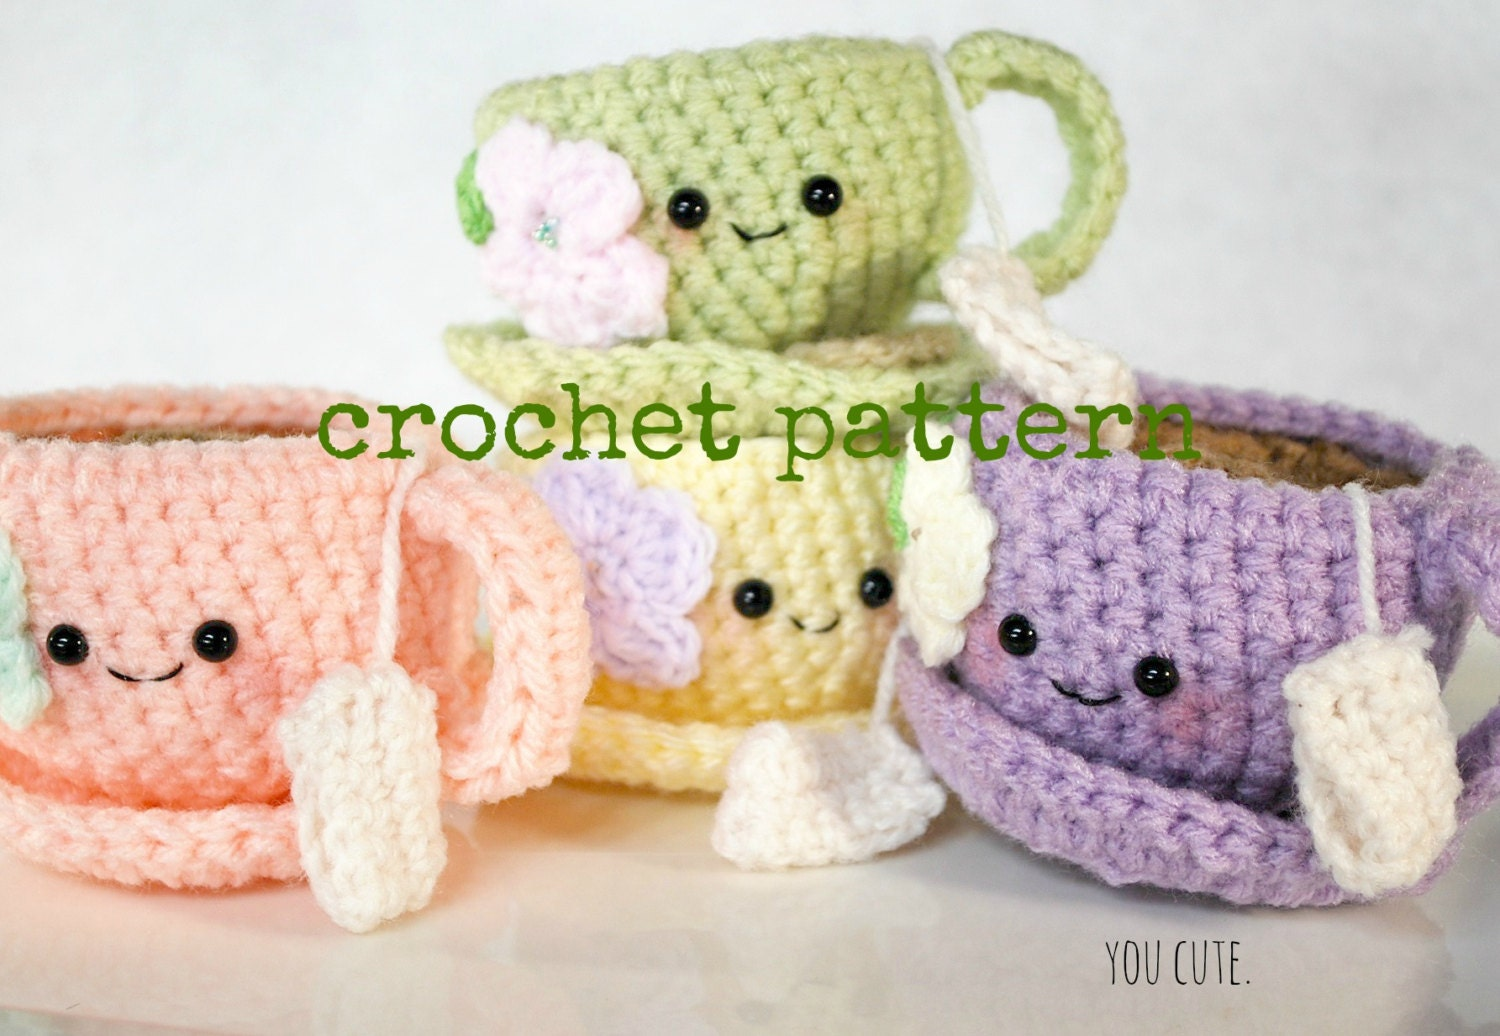 CROCHET PATTERN-Tea Cup and Saucer from youcute on Etsy Studio